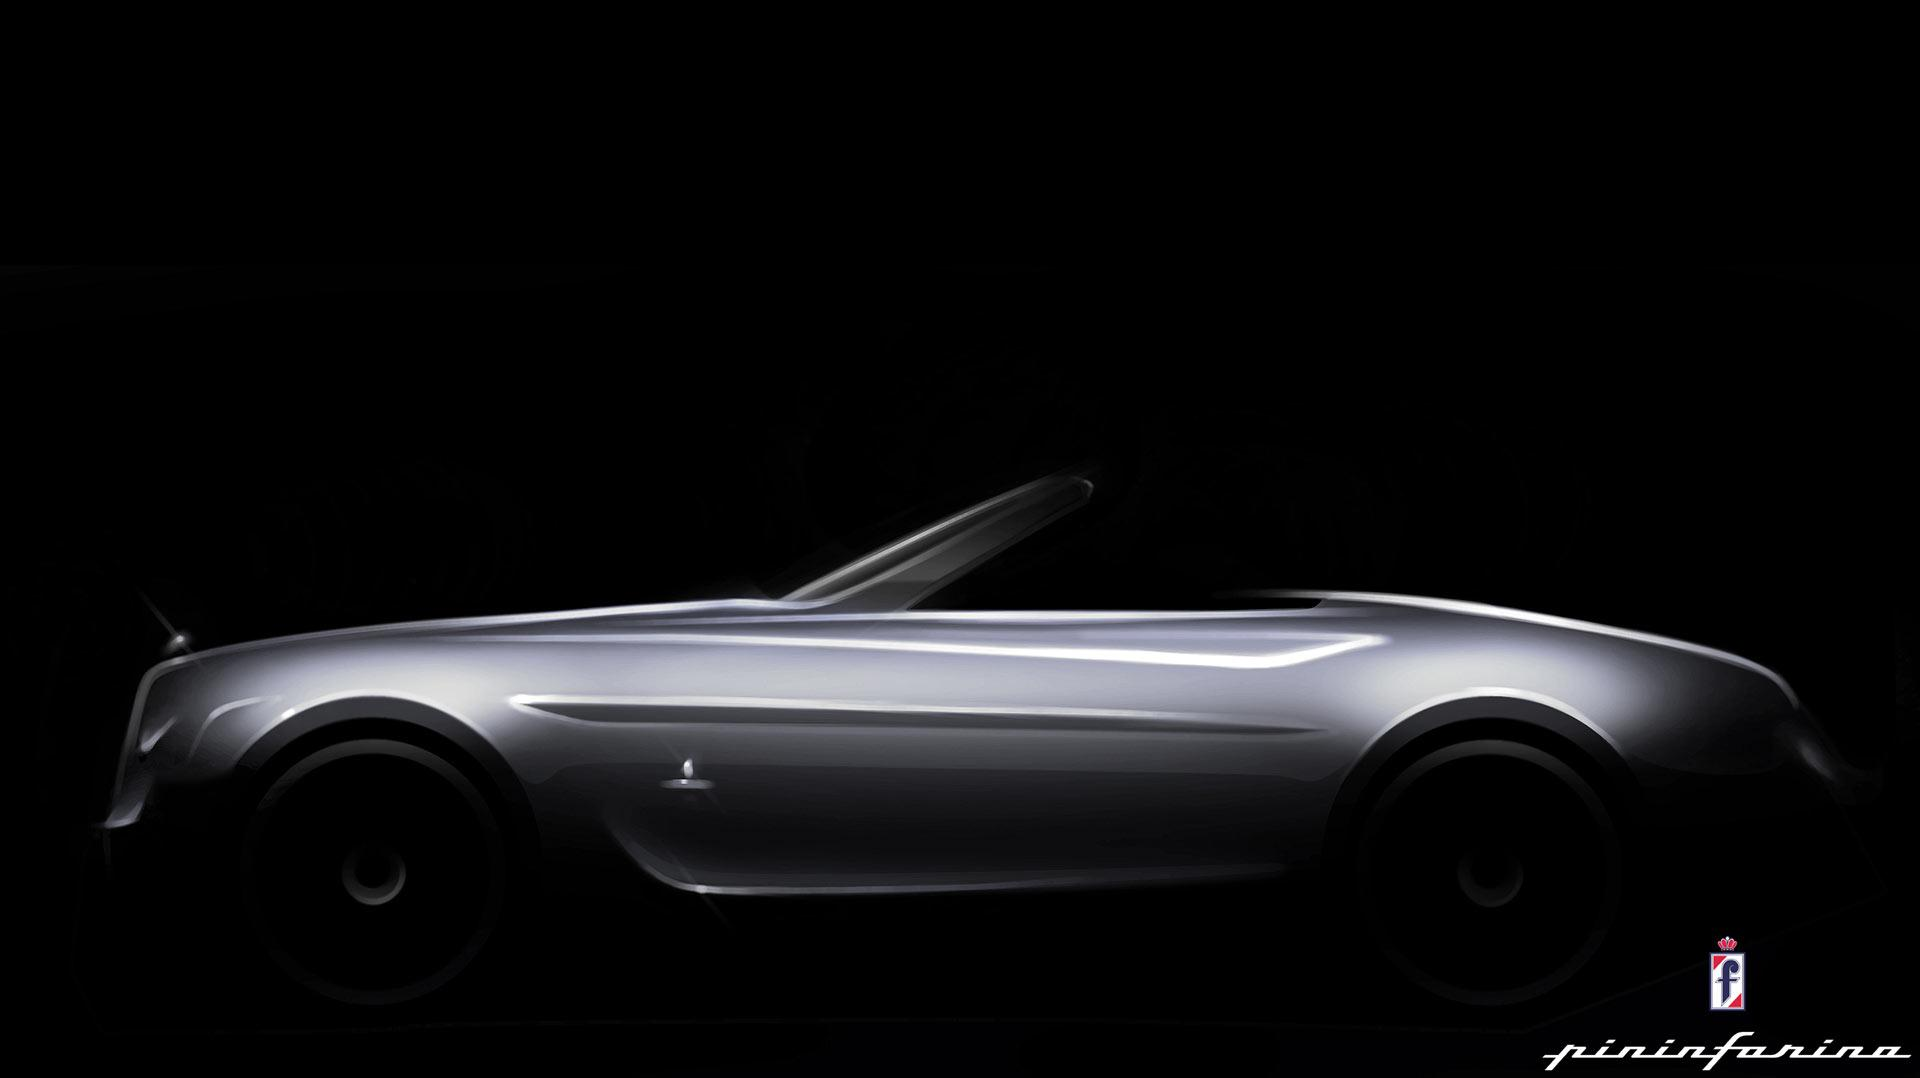 2008 Rolls Royce Hyperion Conceptcarz Com HD Wallpapers Download free images and photos [musssic.tk]